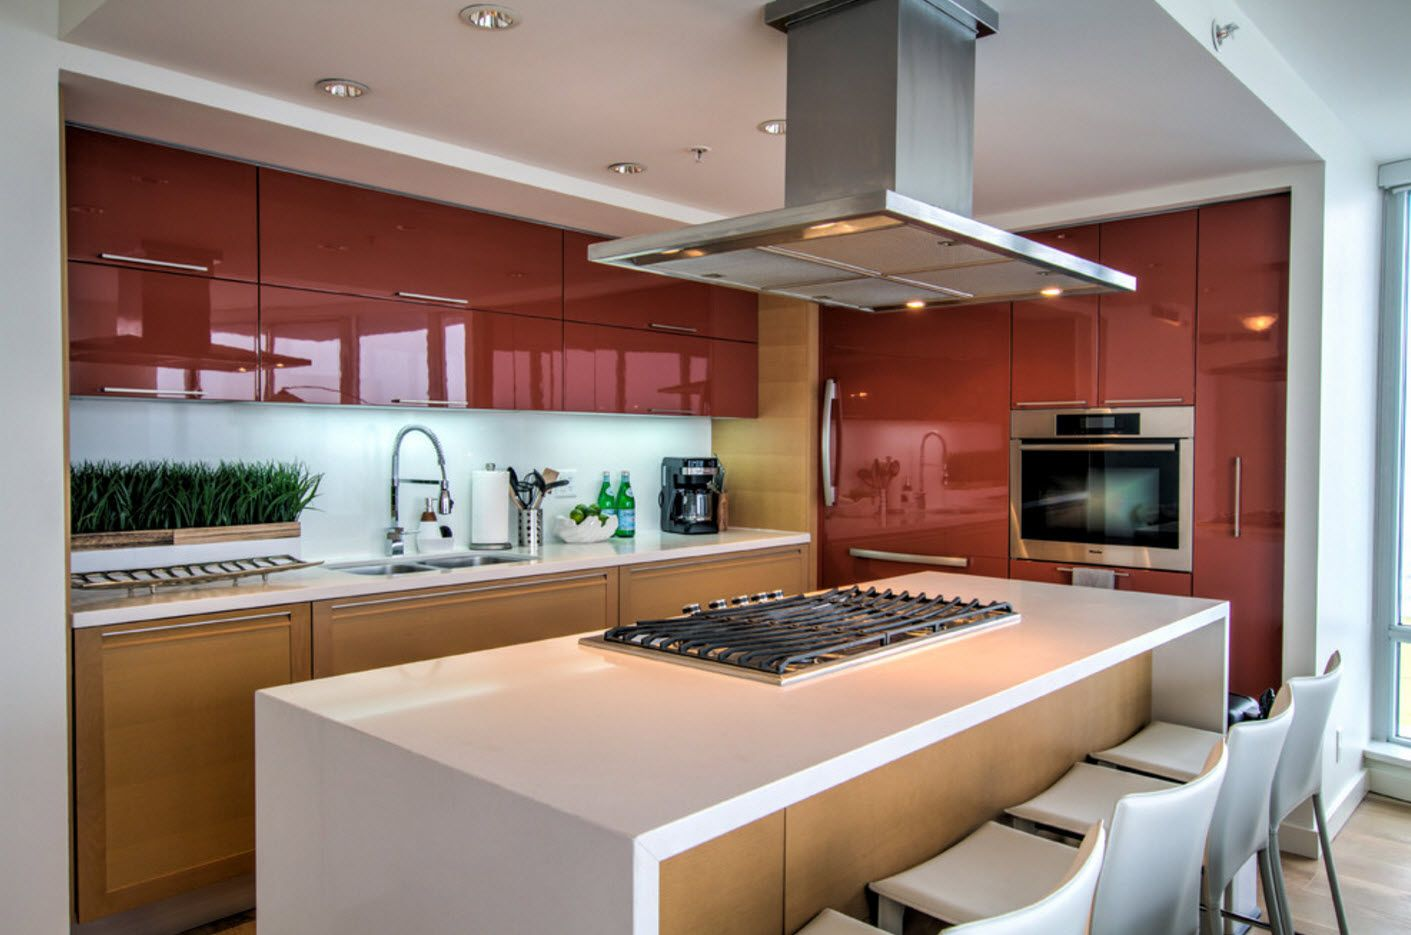 100+ Photo Design Ideas of Modern, Comfortable IKEA Kitchens. Nice red hue of furniture facades